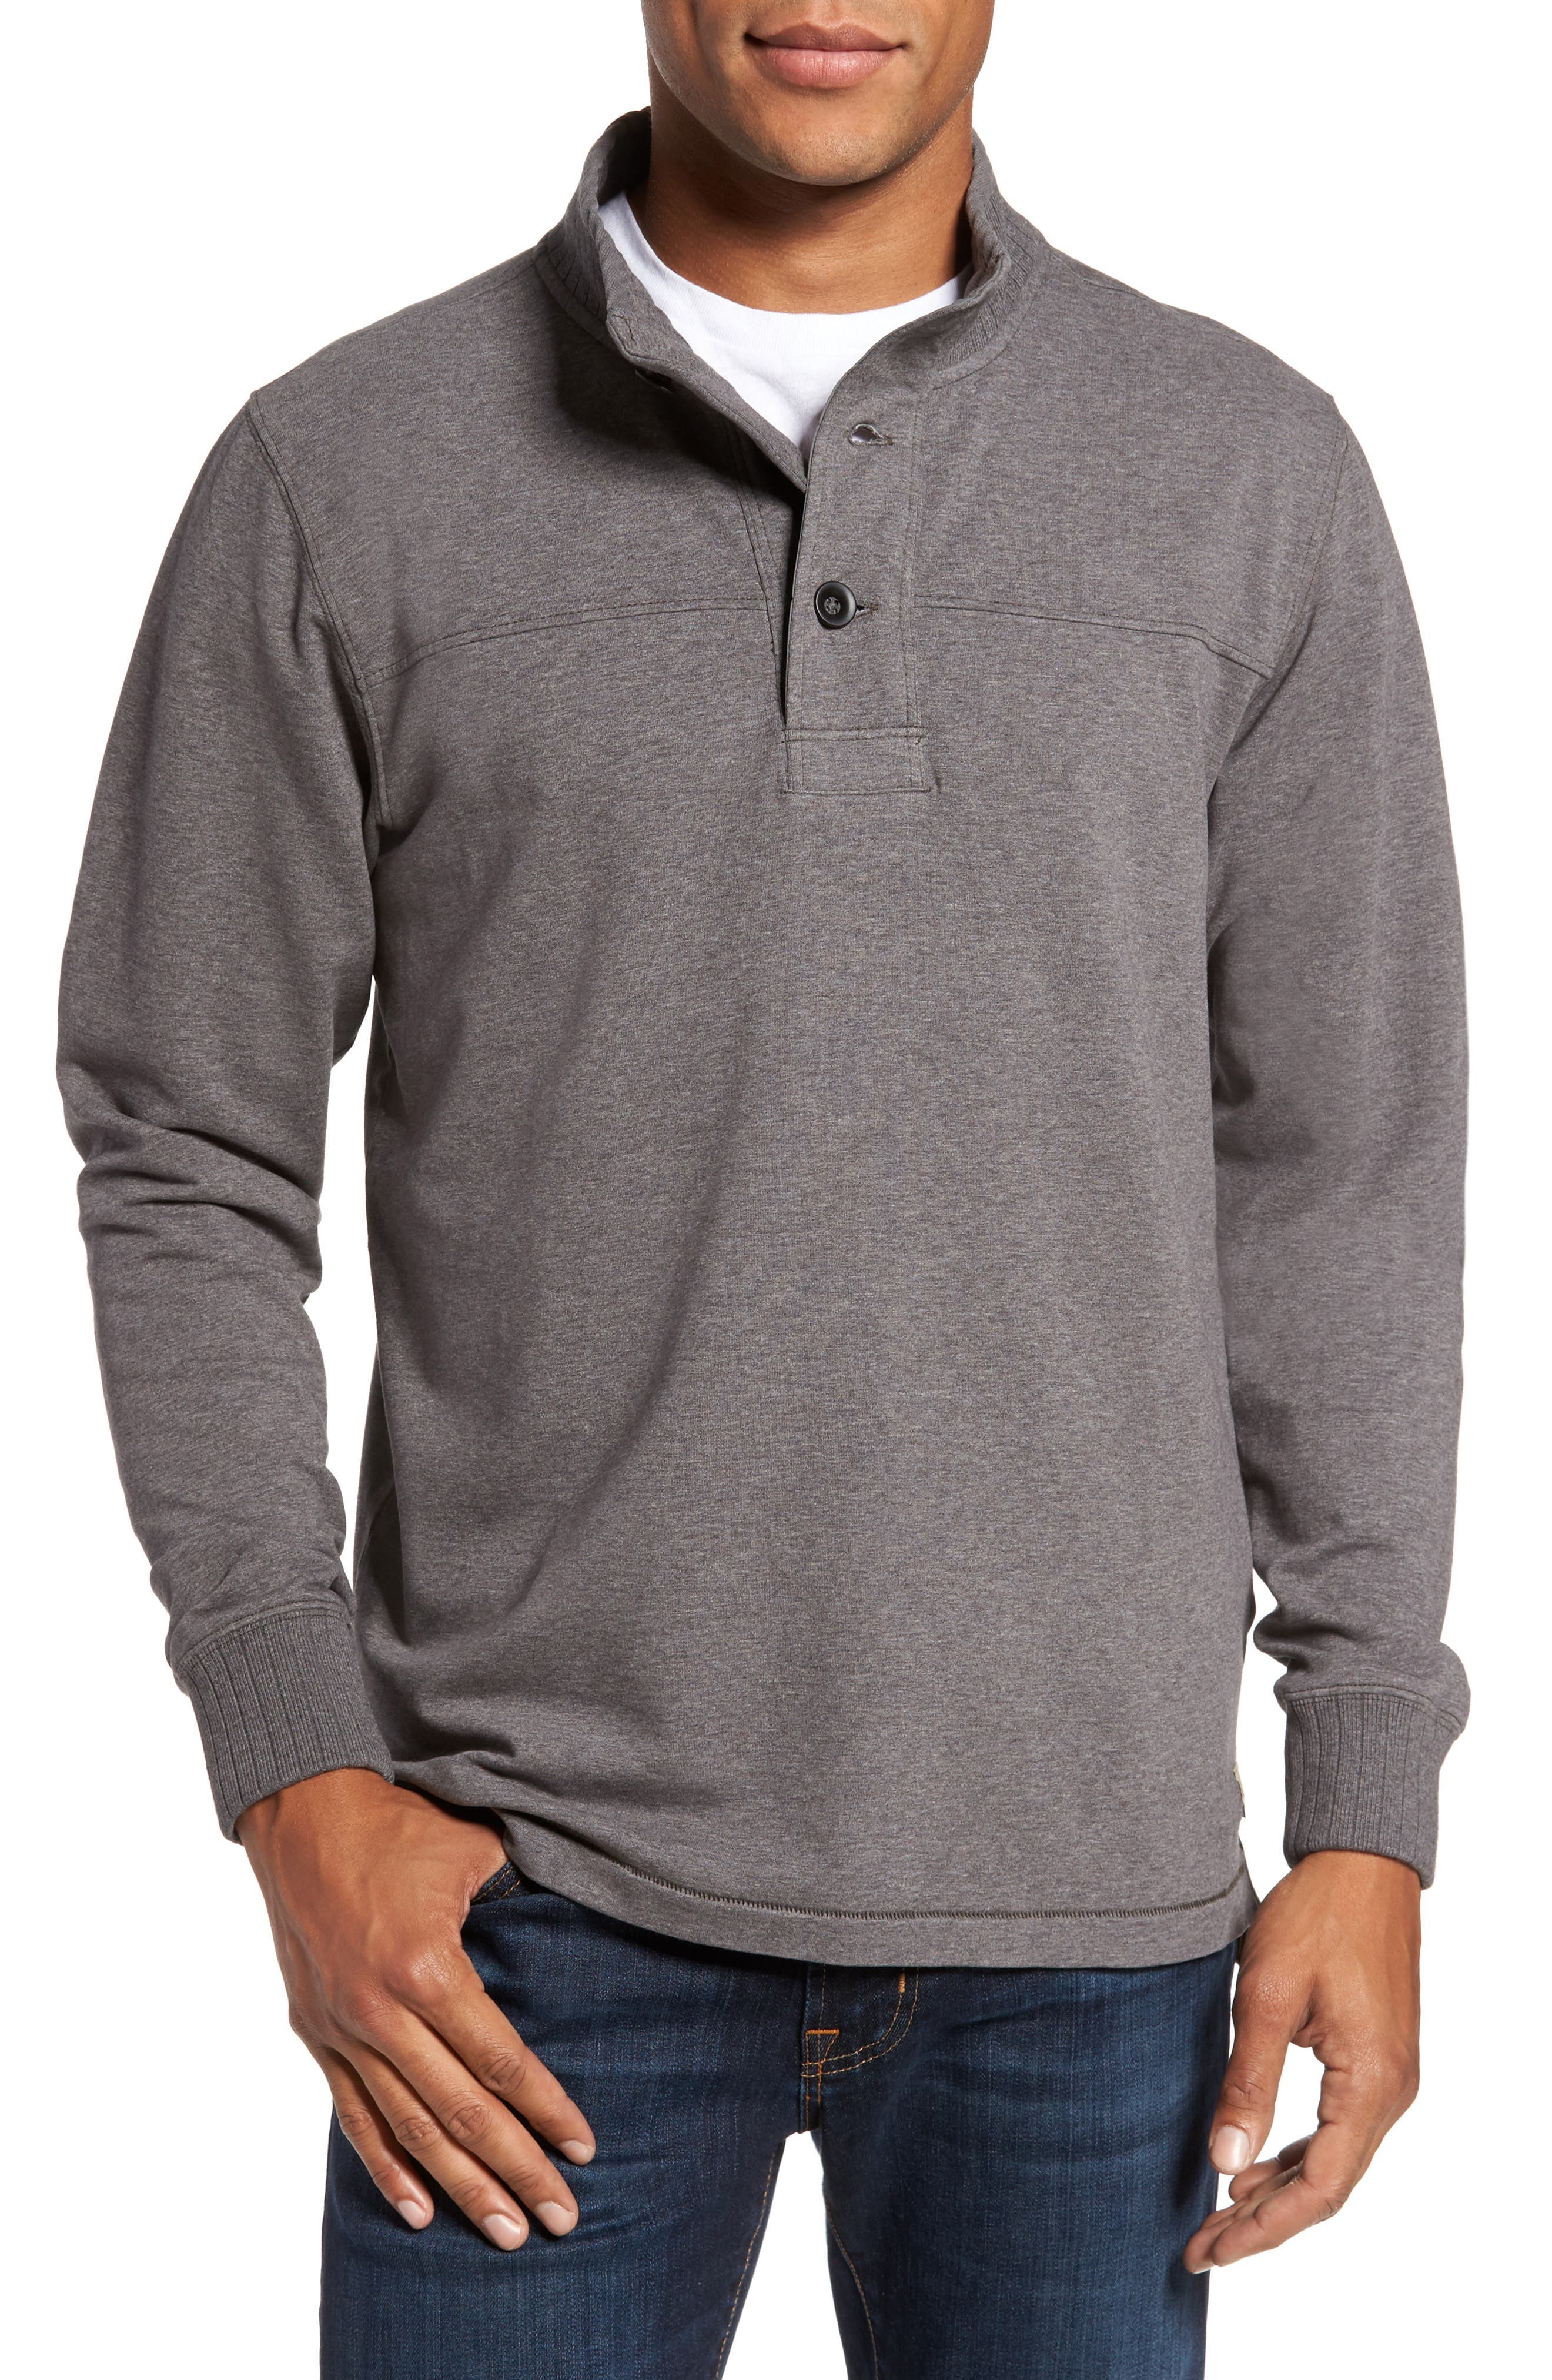 Taylor Quarter Button Pullover,                             Main thumbnail 1, color,                             Smoked Pearl Heather